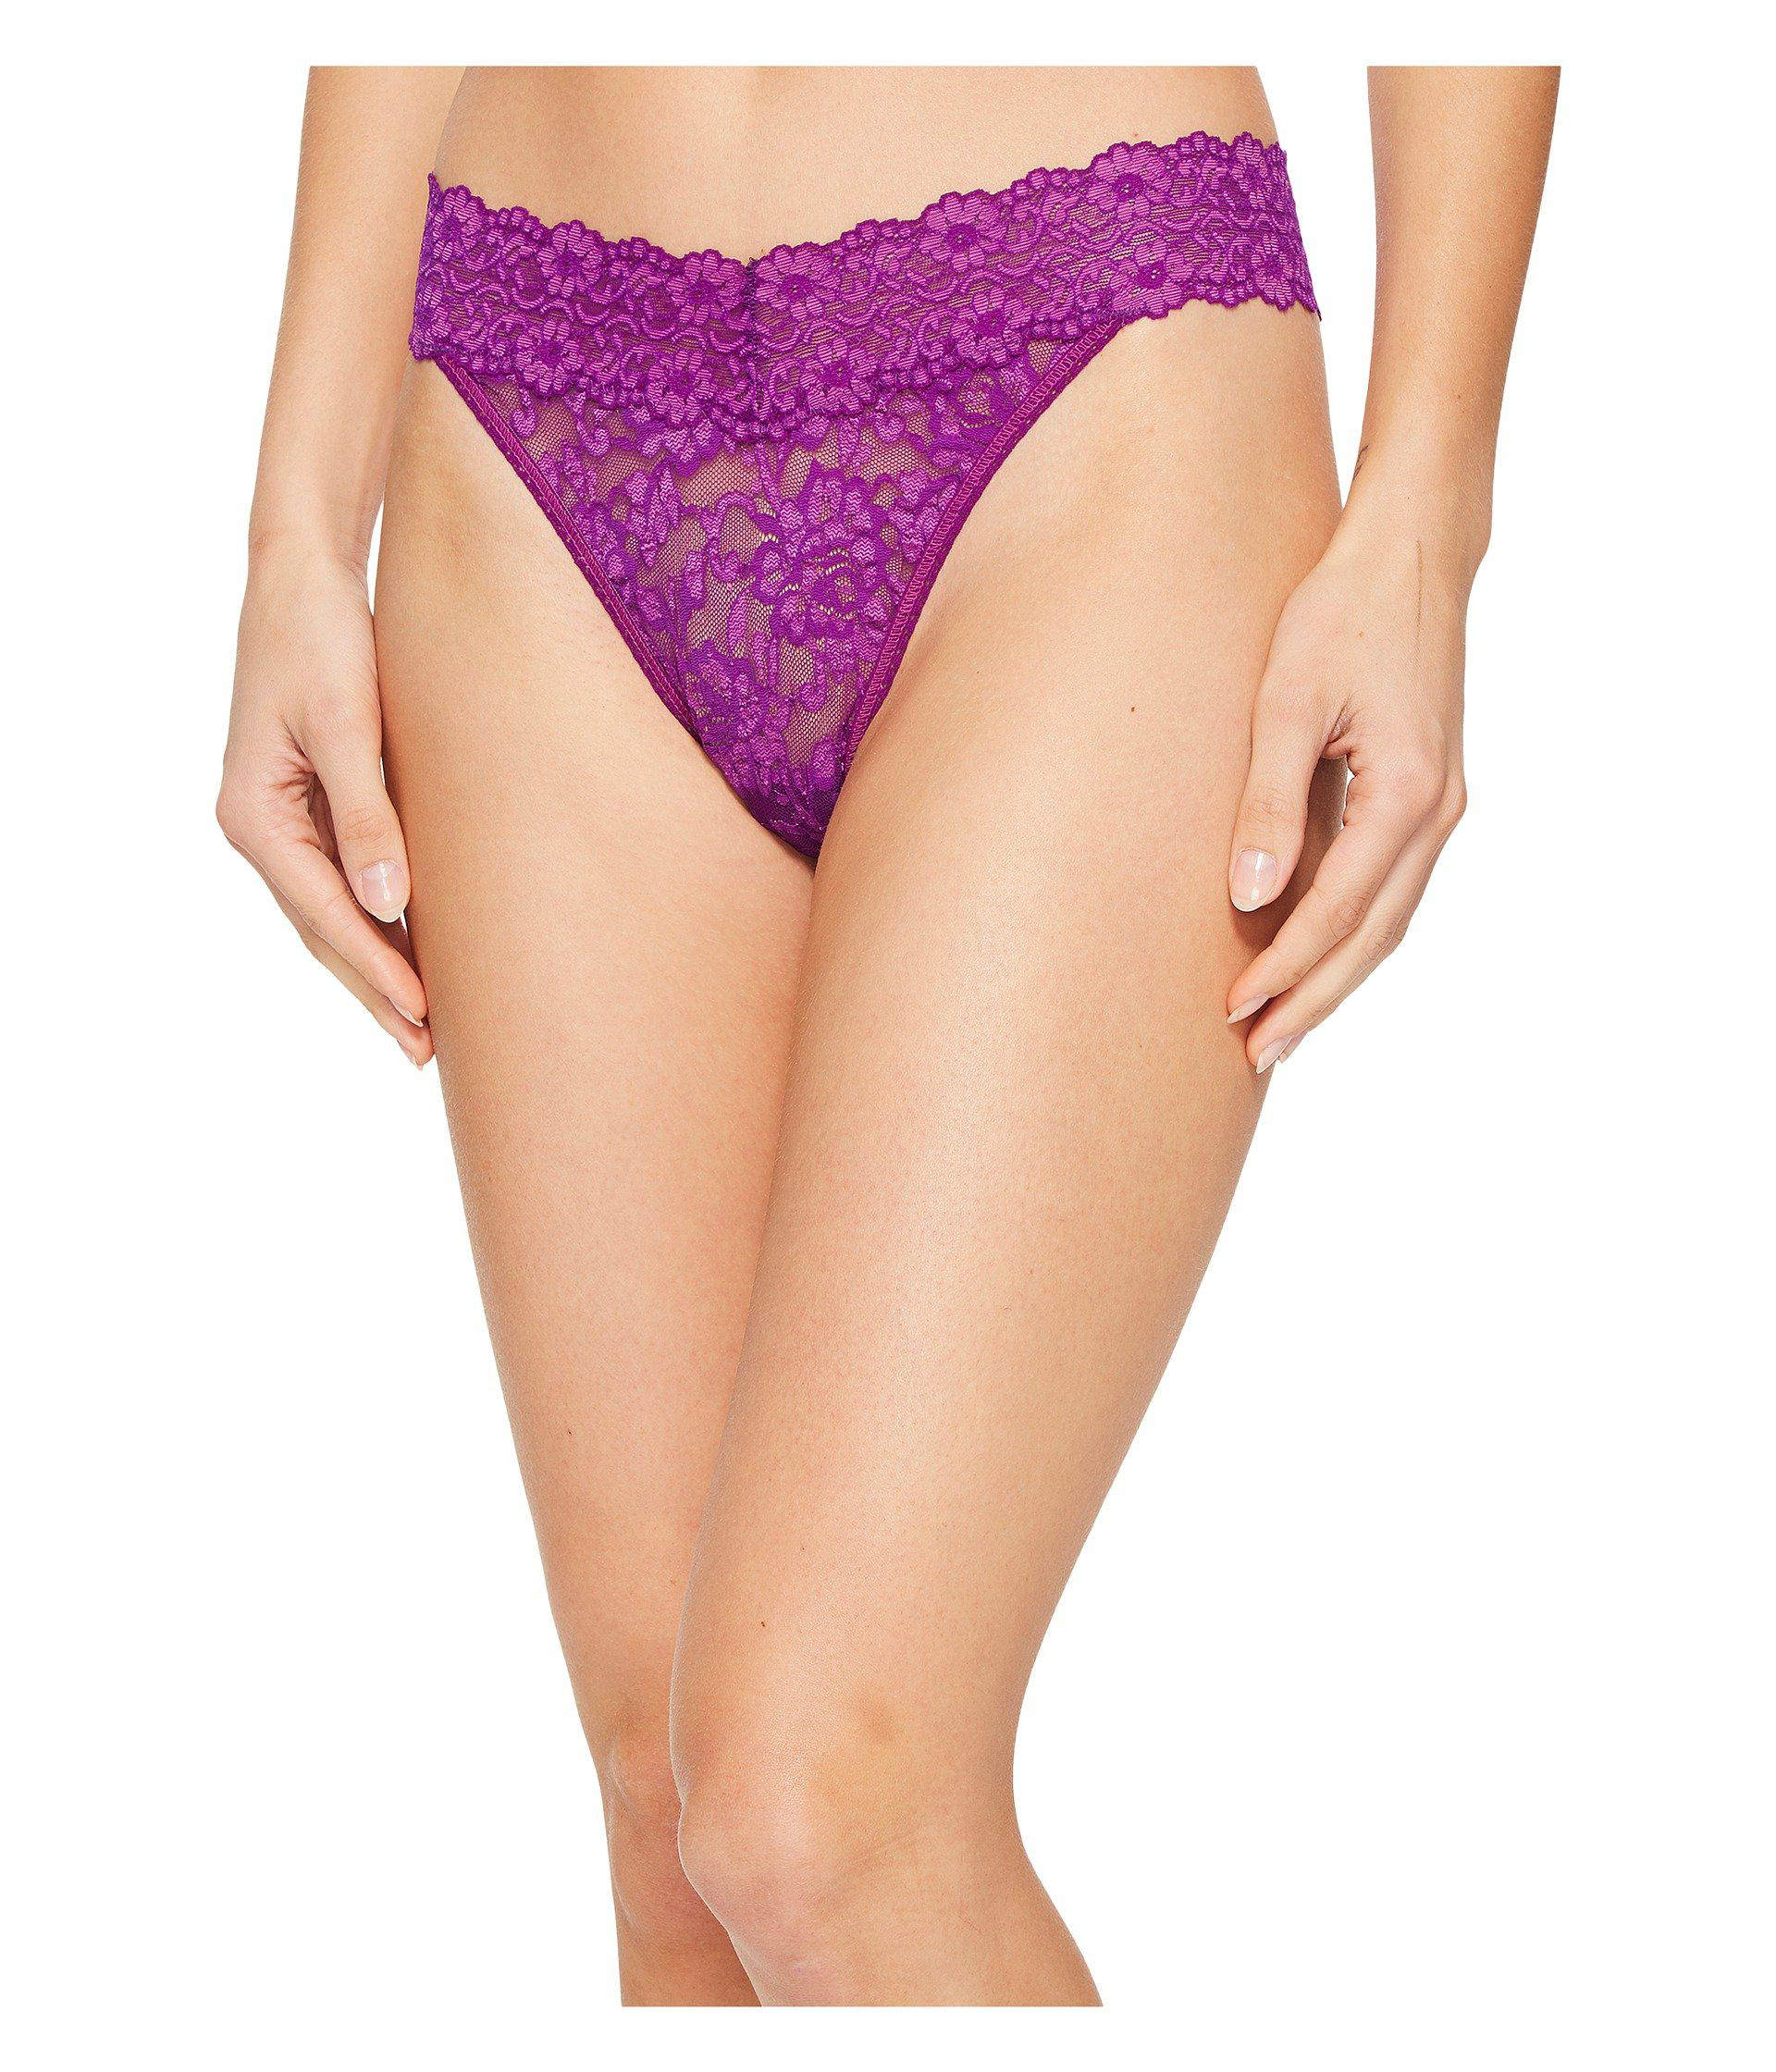 4ce06eb5276 Lyst - Hanky Panky Cross-dyed Signature Lace Original Rise Thong ...